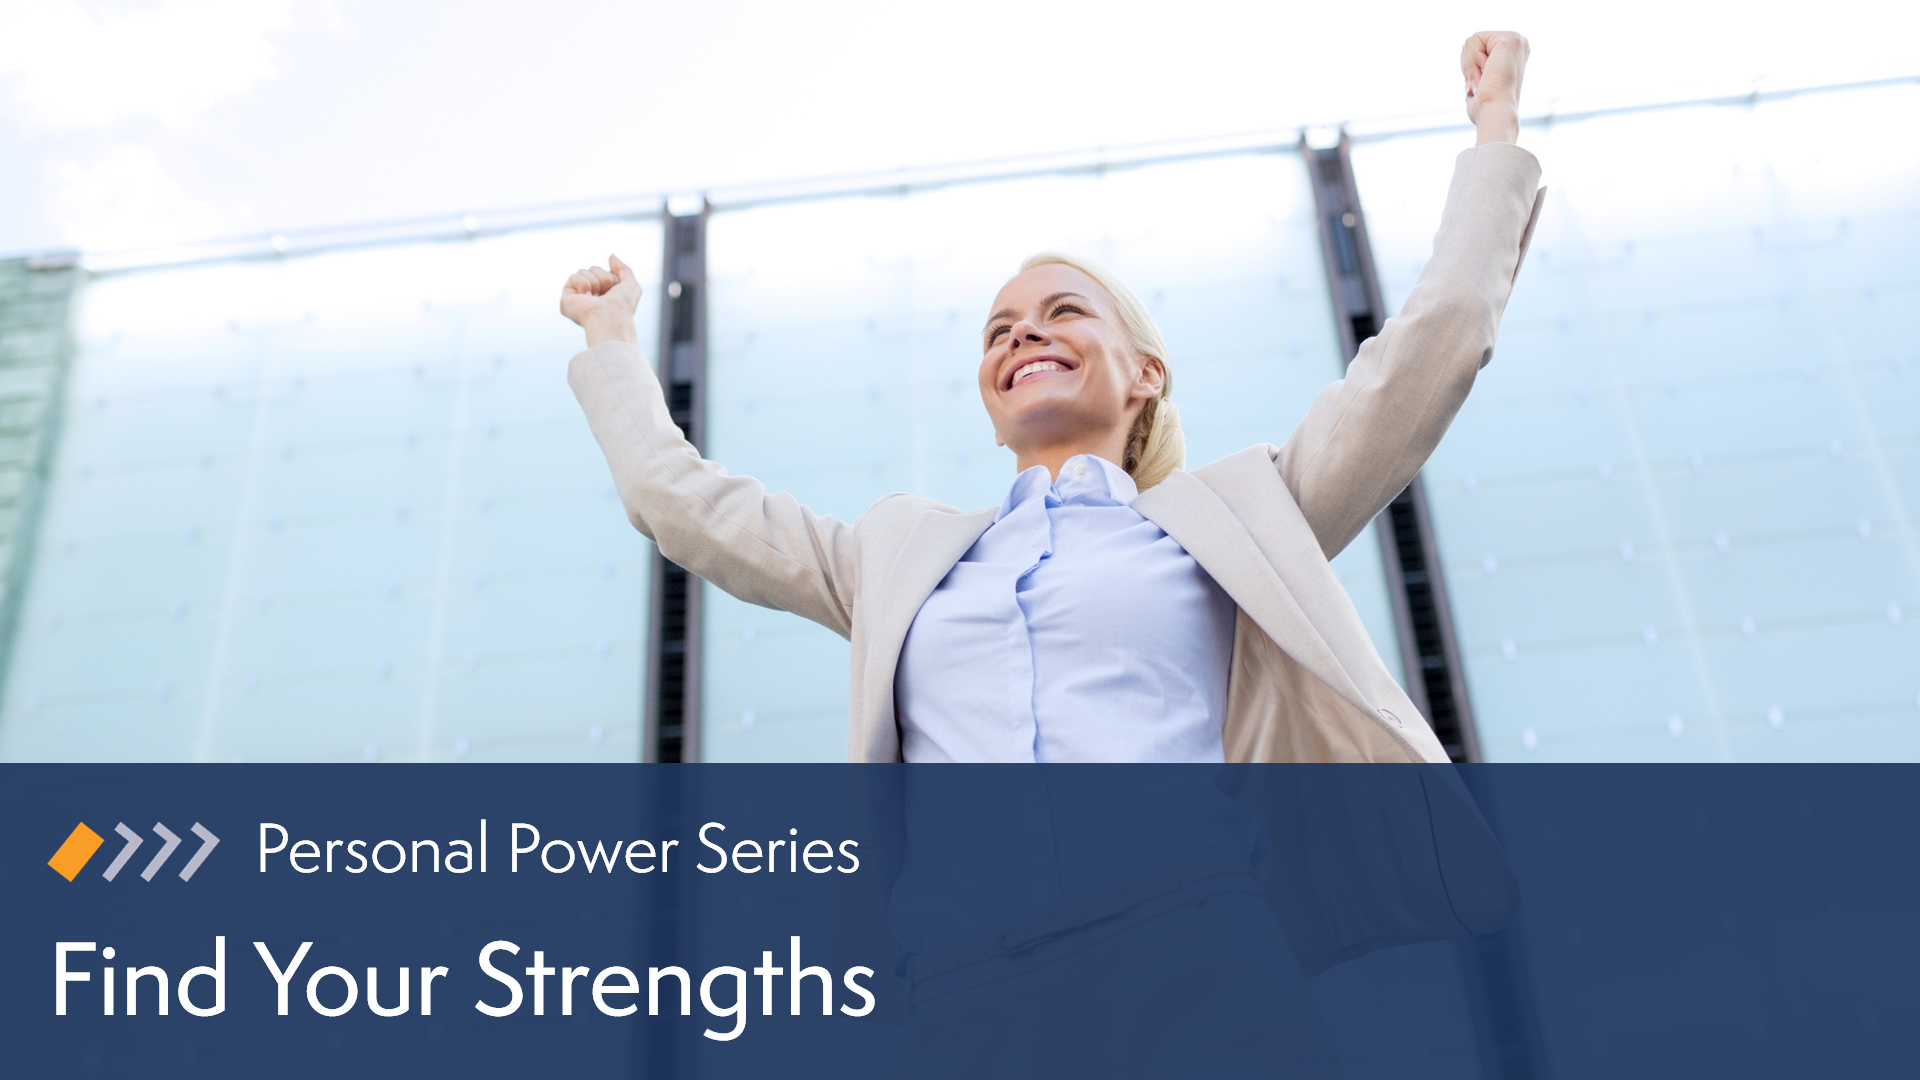 Personal Power: Find Your Strengths